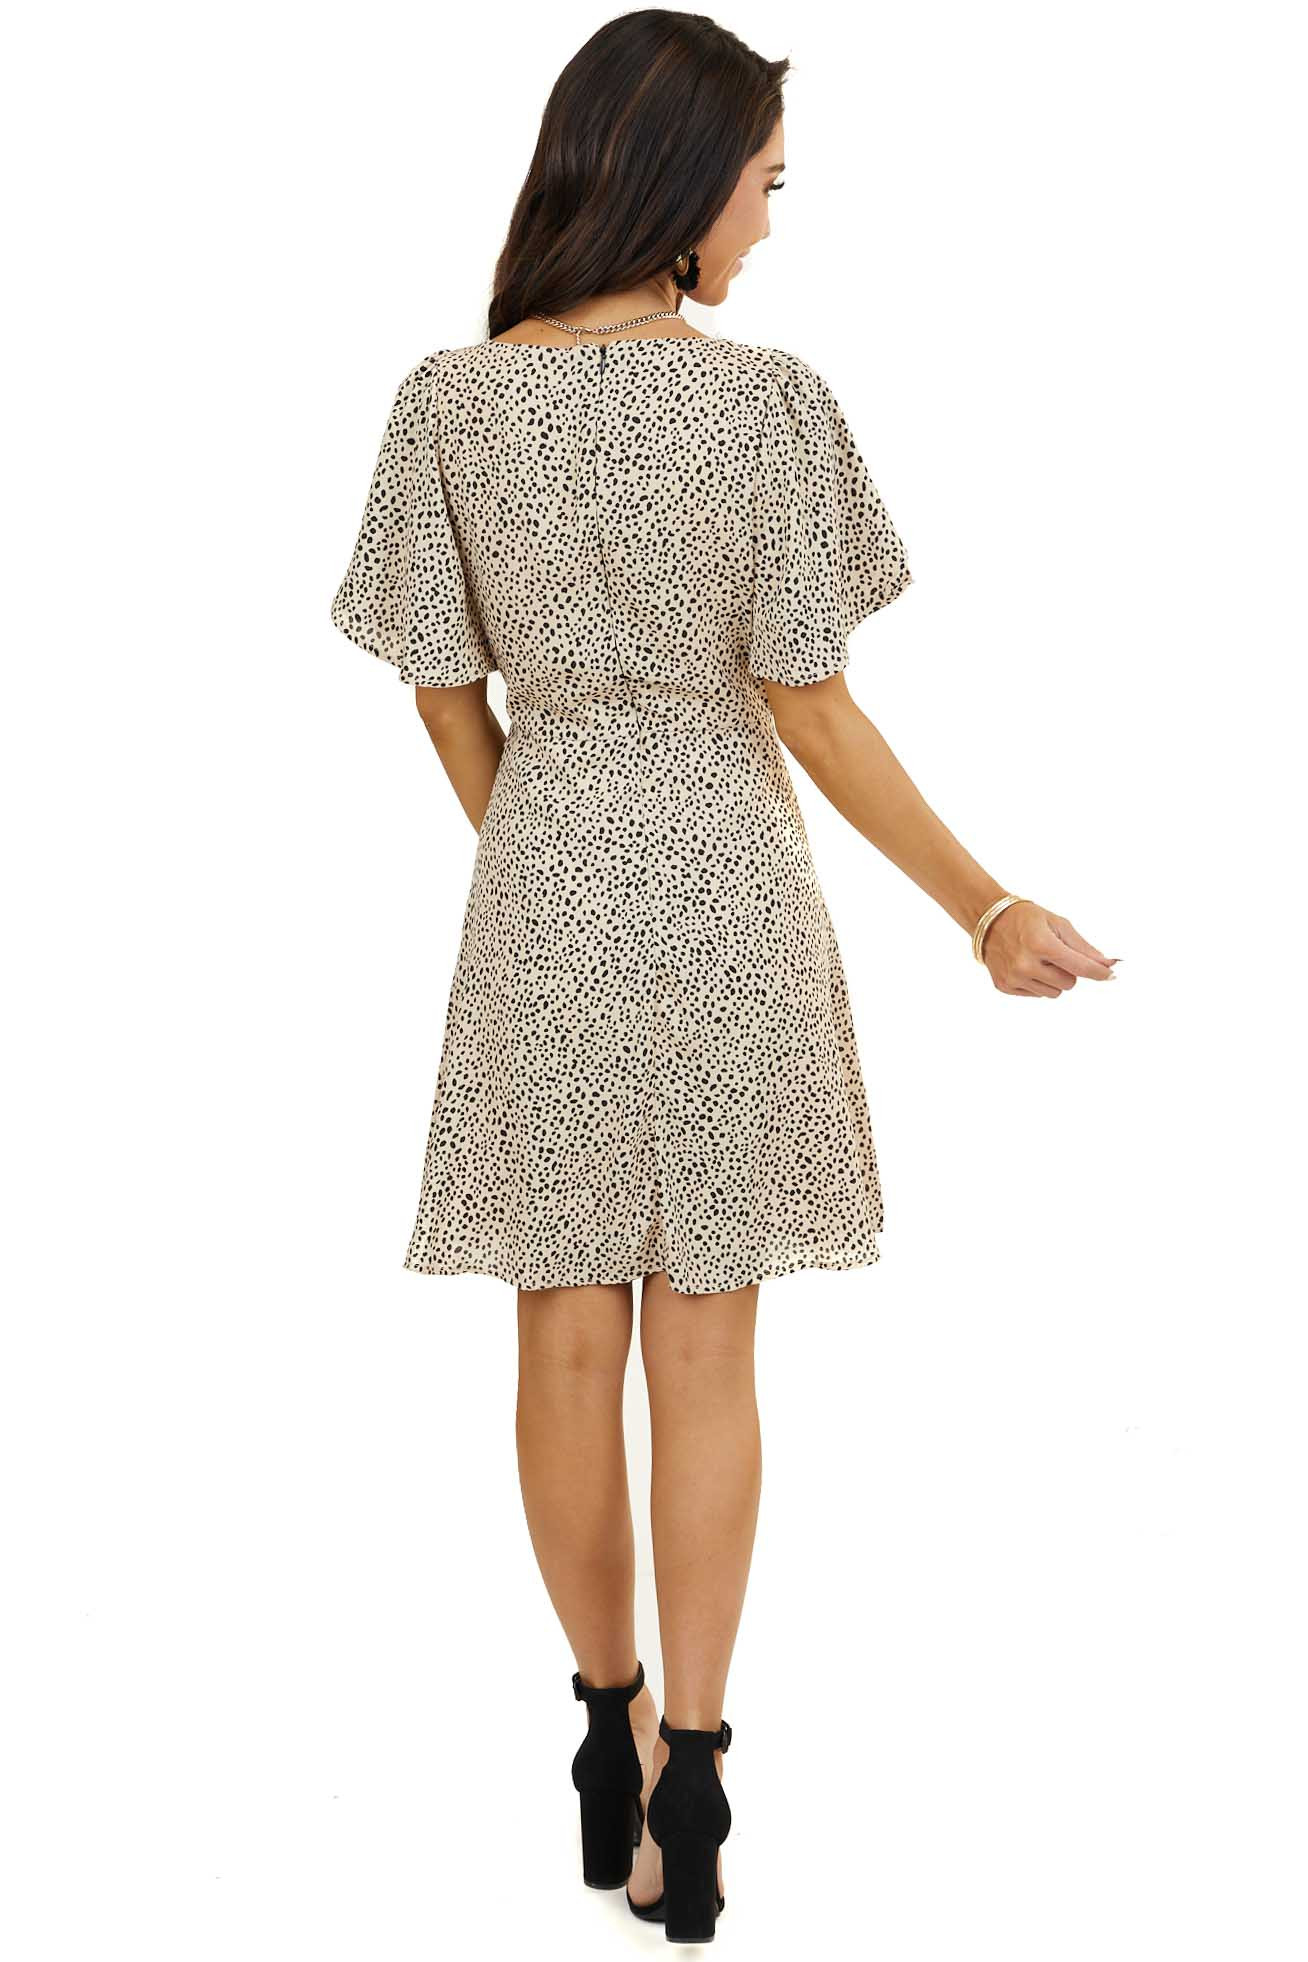 Beige and Black Cheetah Print Dress with Short Sleeves